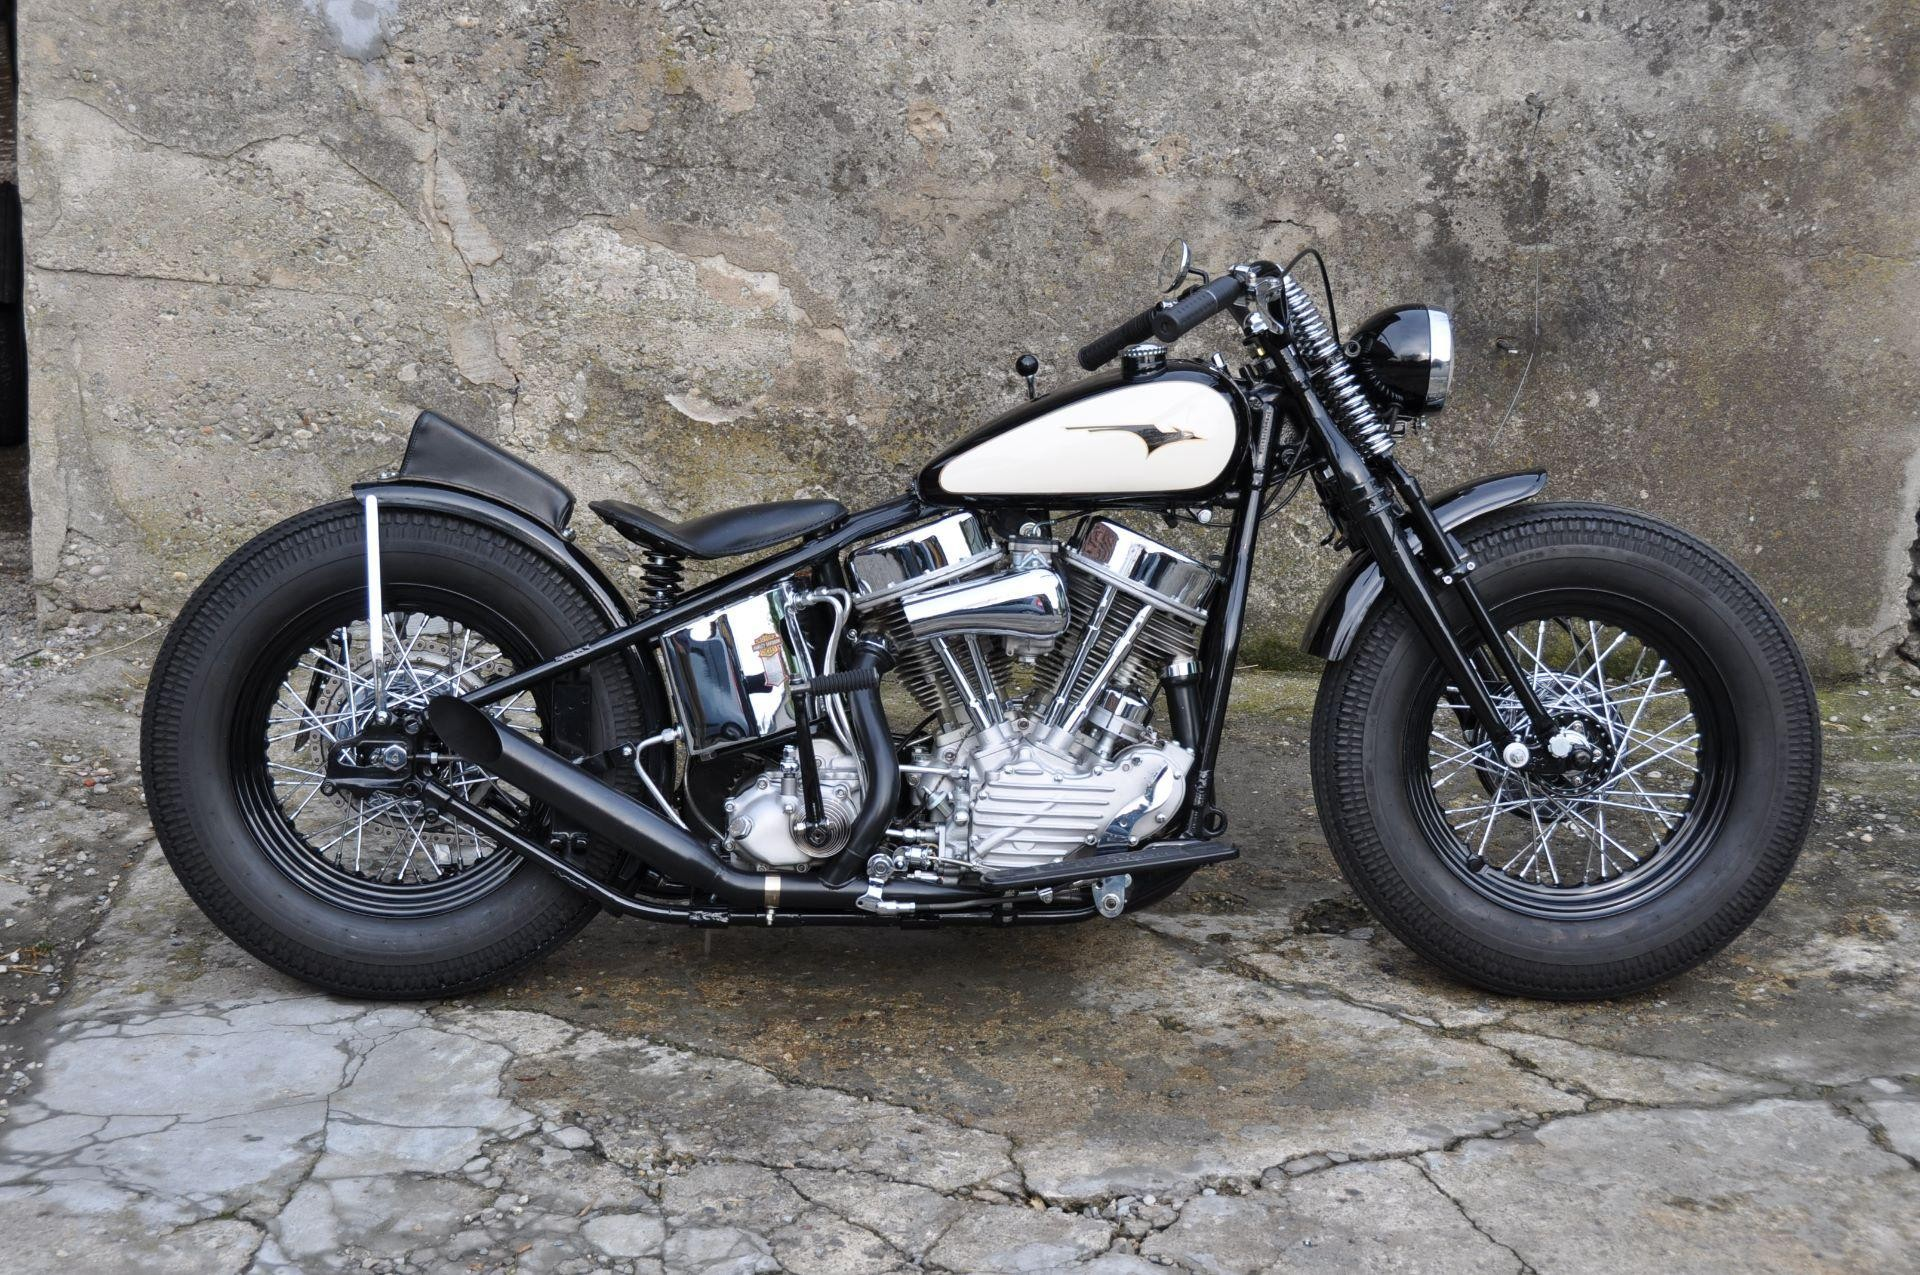 Harley Davidson El Knucklehead For Sale